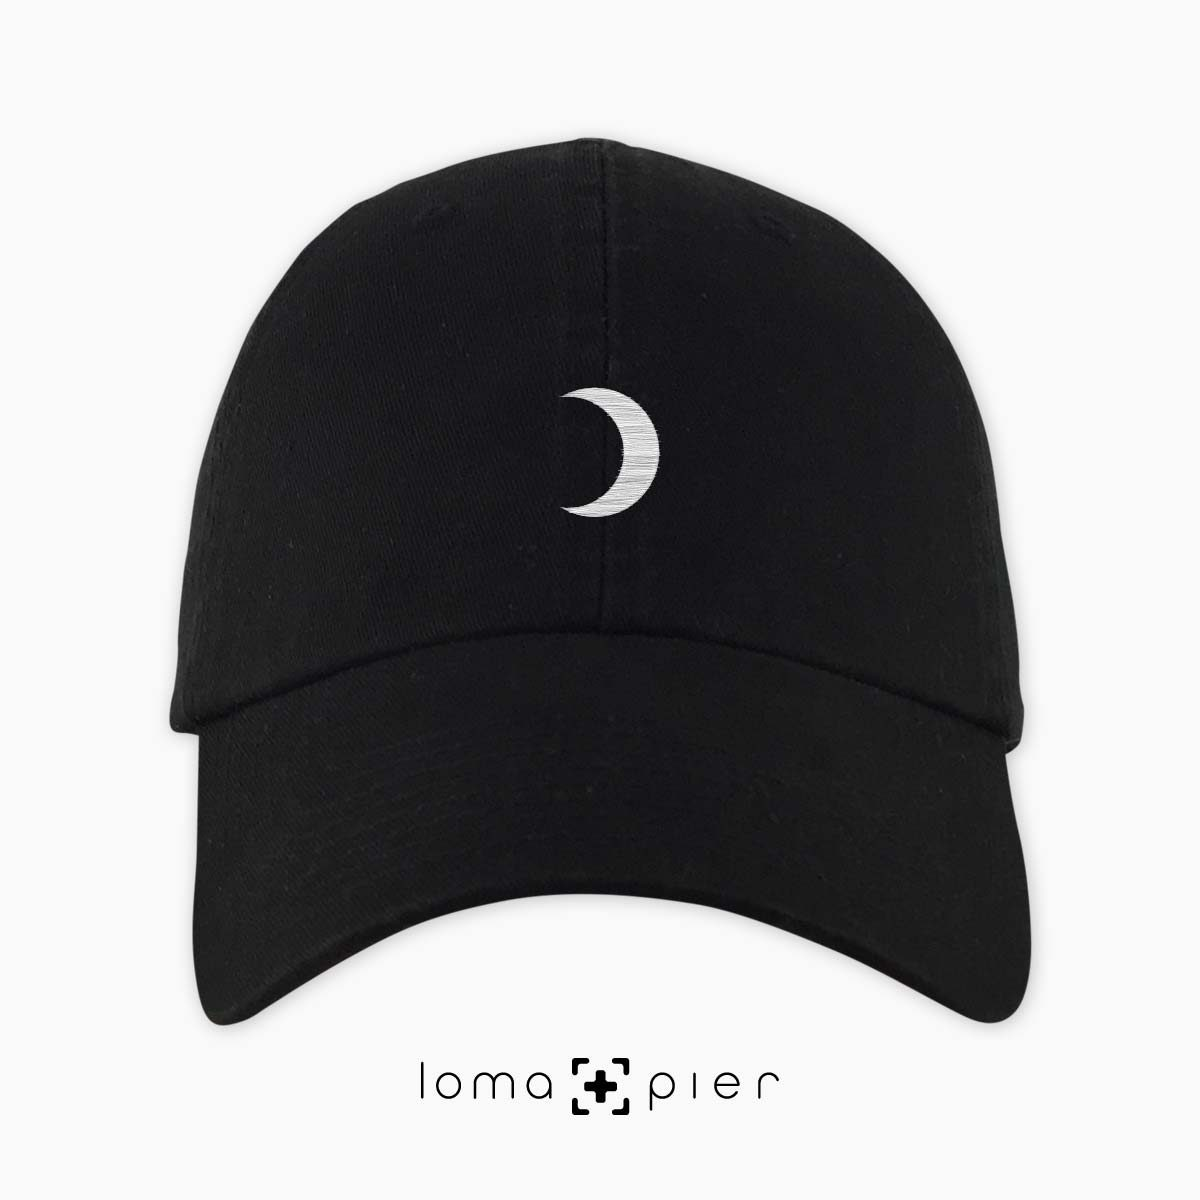 MOON icon embroidered on a black dad hat by loma+pier hat store made in the USA